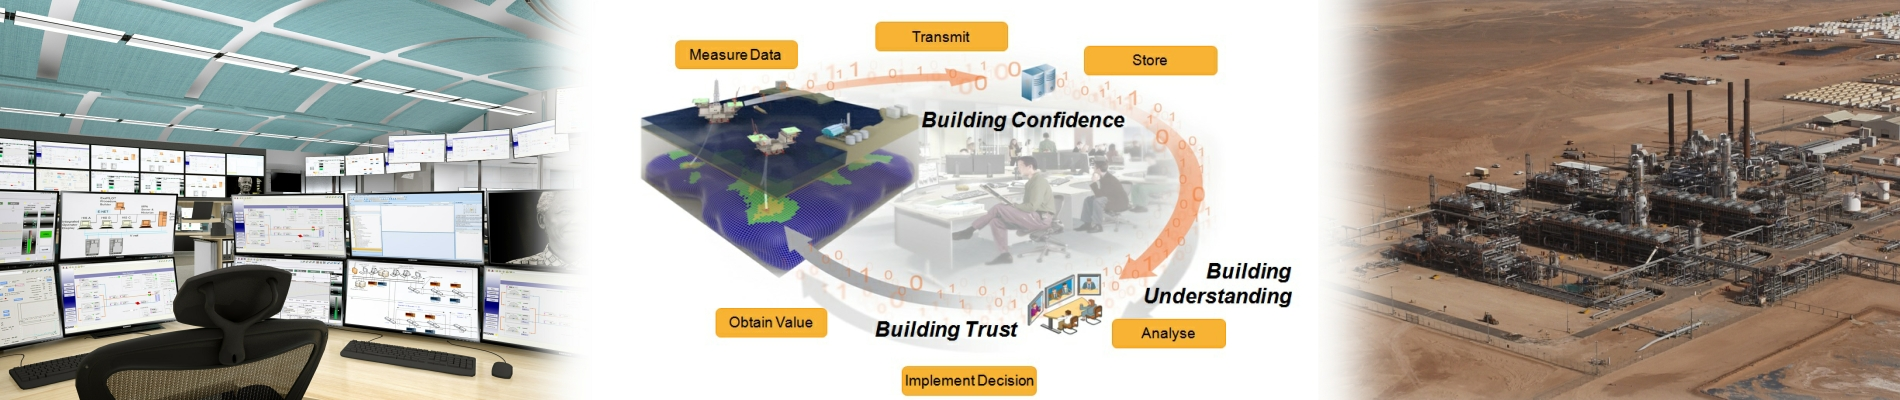 technology, consultancy, integrated, collaborative working environments, integrated operations, digital transformation, collaborative, collaboration, IO, DOF